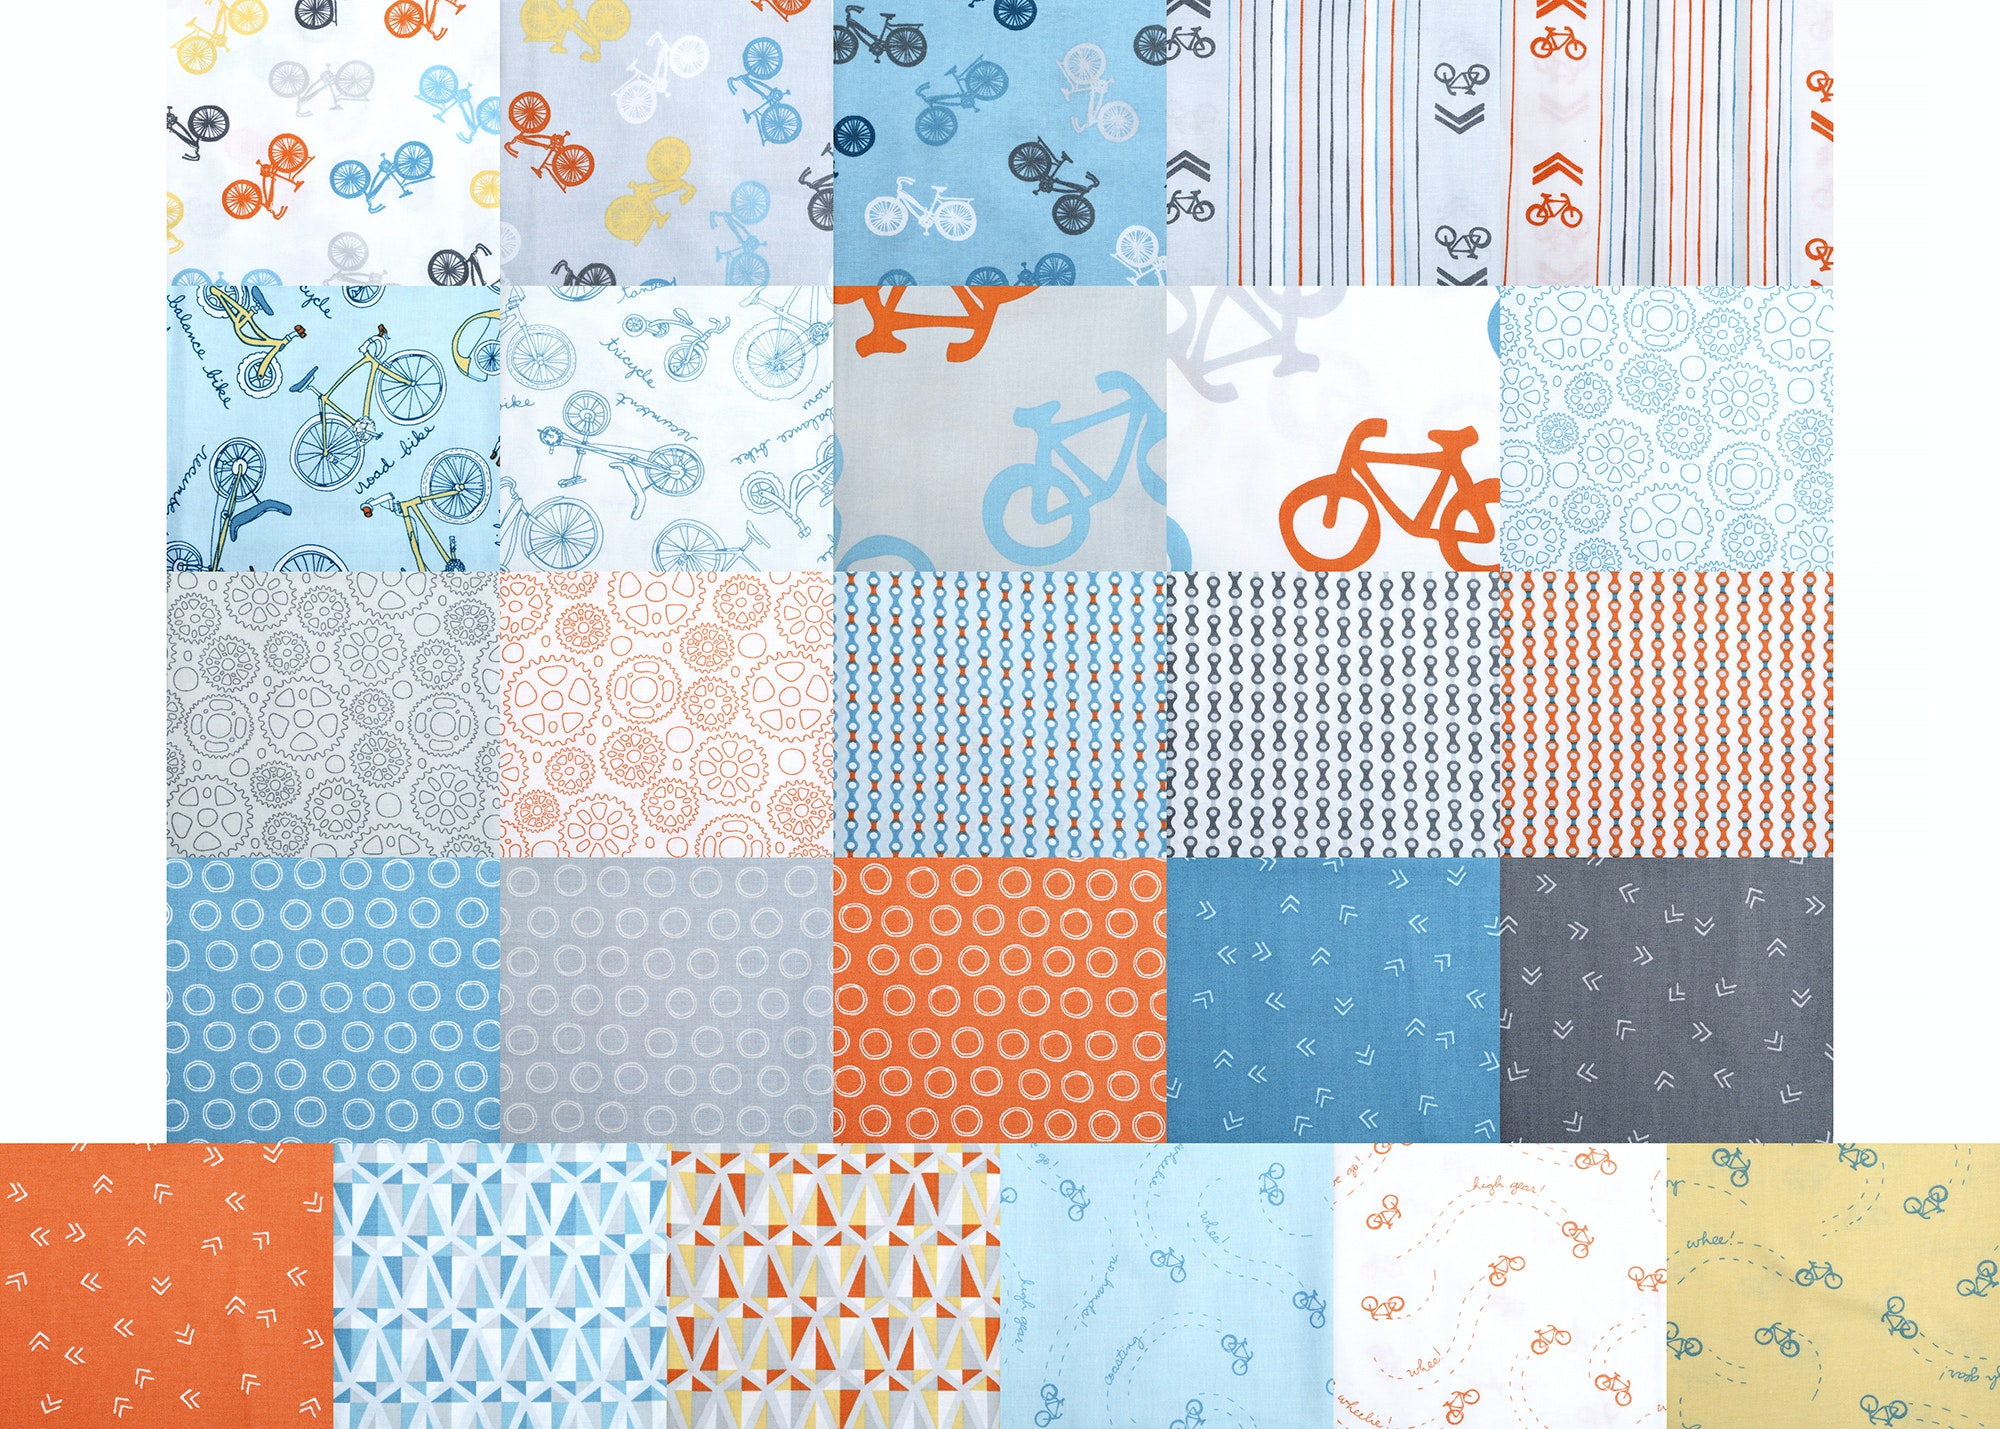 Cycles of Life by Kristen Berger Precuts